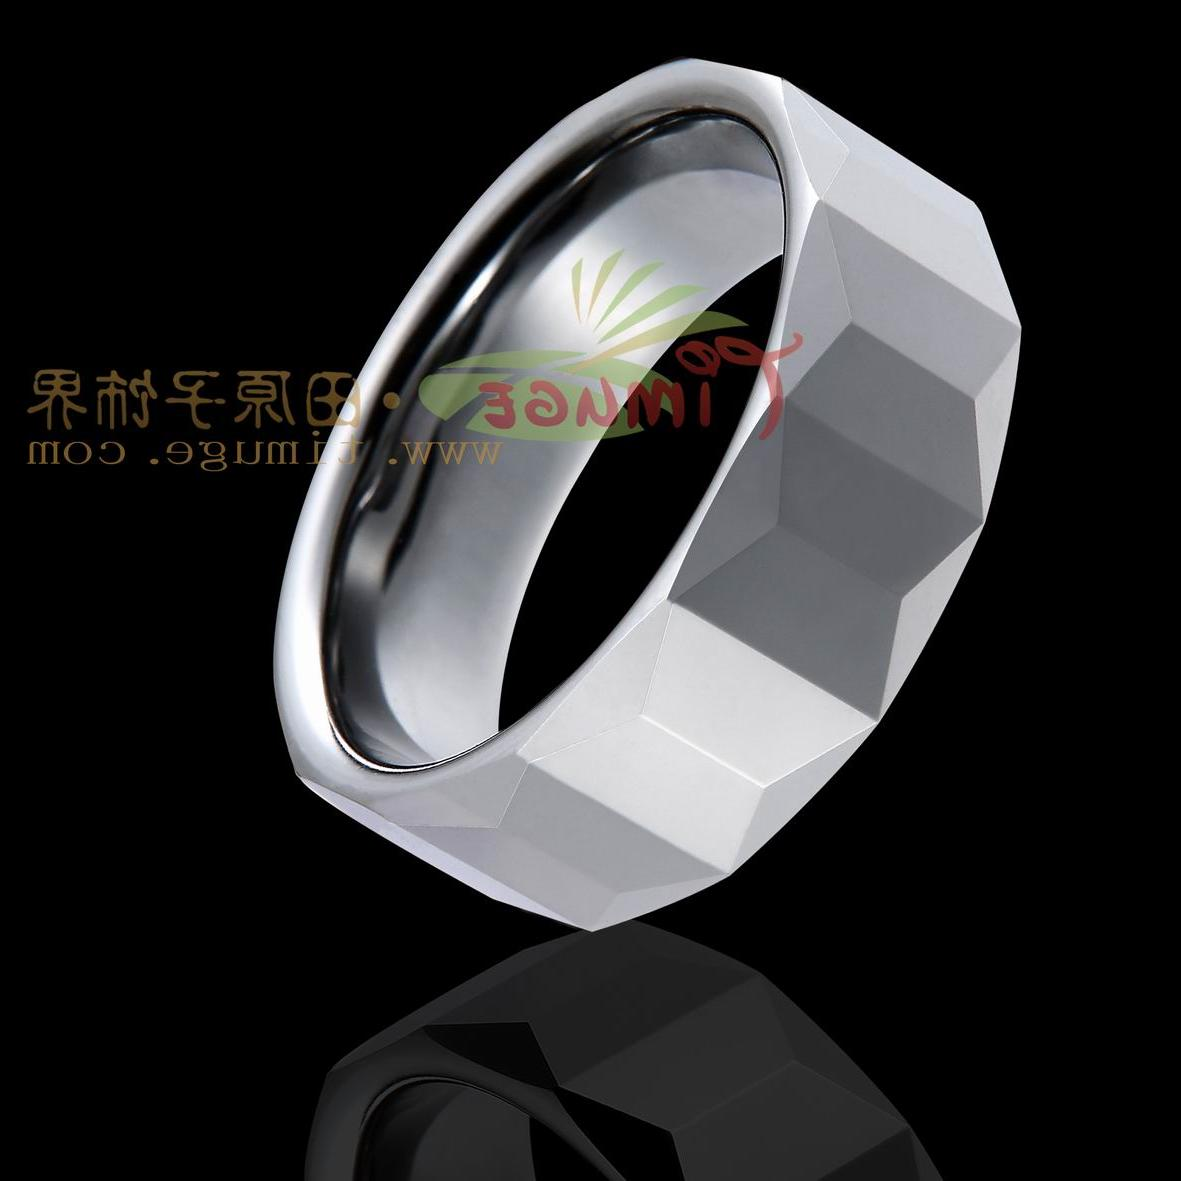 Ceramic Ring, Fashion Jewelry, Wedding Rings 1  Professional Manufacture